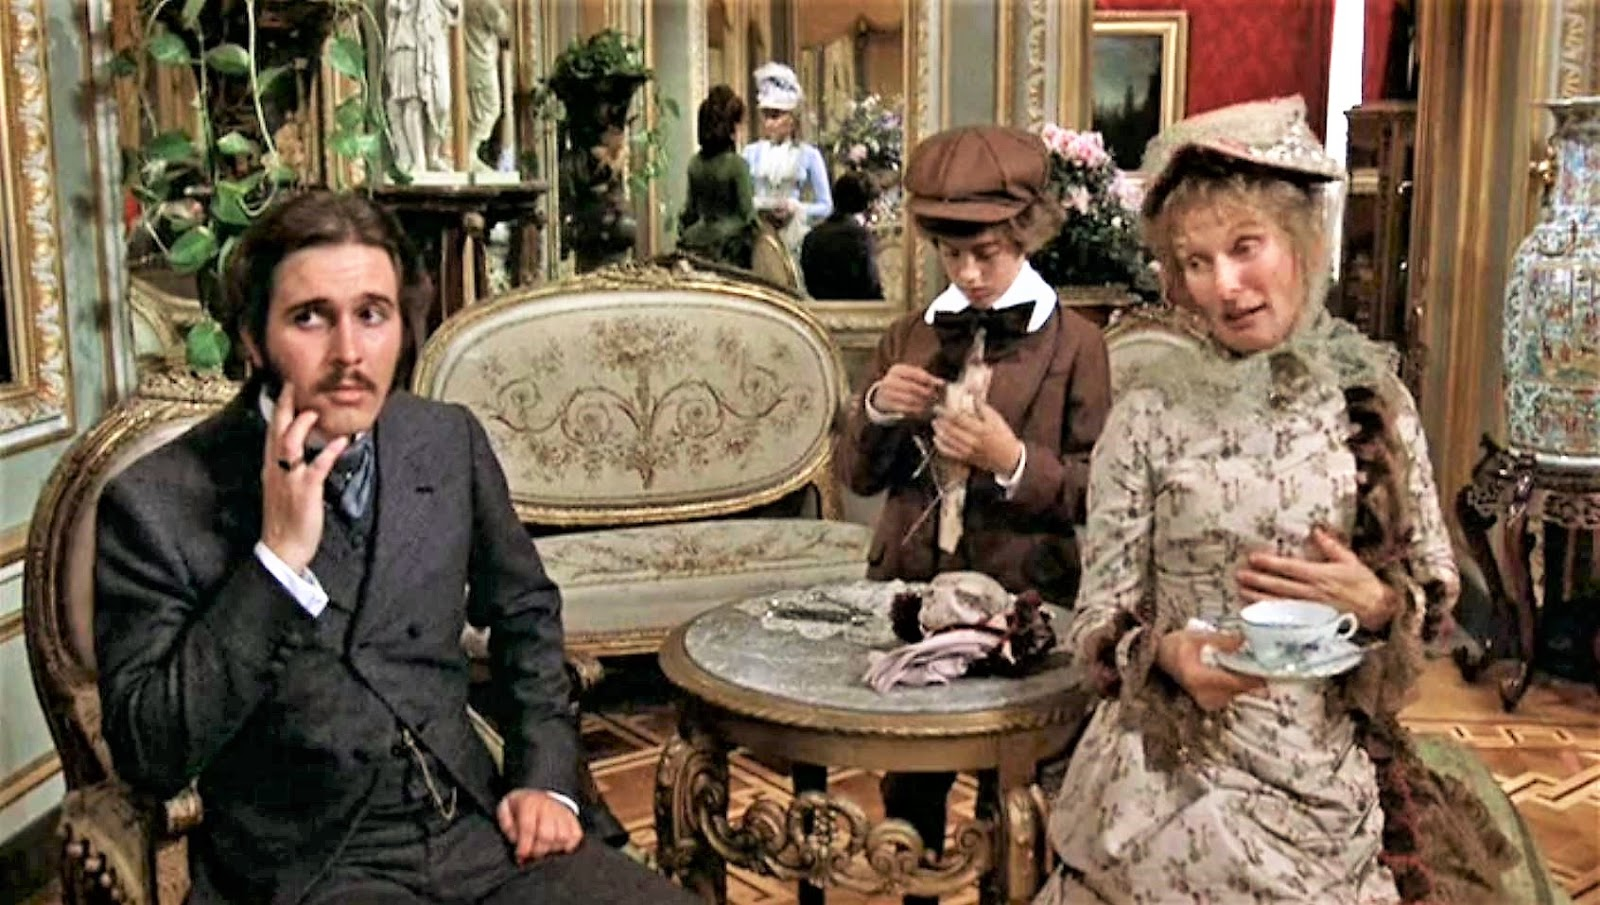 dreams are what le cinema is for daisy miller  in this beautifully composed shot mr winterbourne keeps his eye on daisy seen in the mirror behind him talking to the hostess mrs walker while mrs